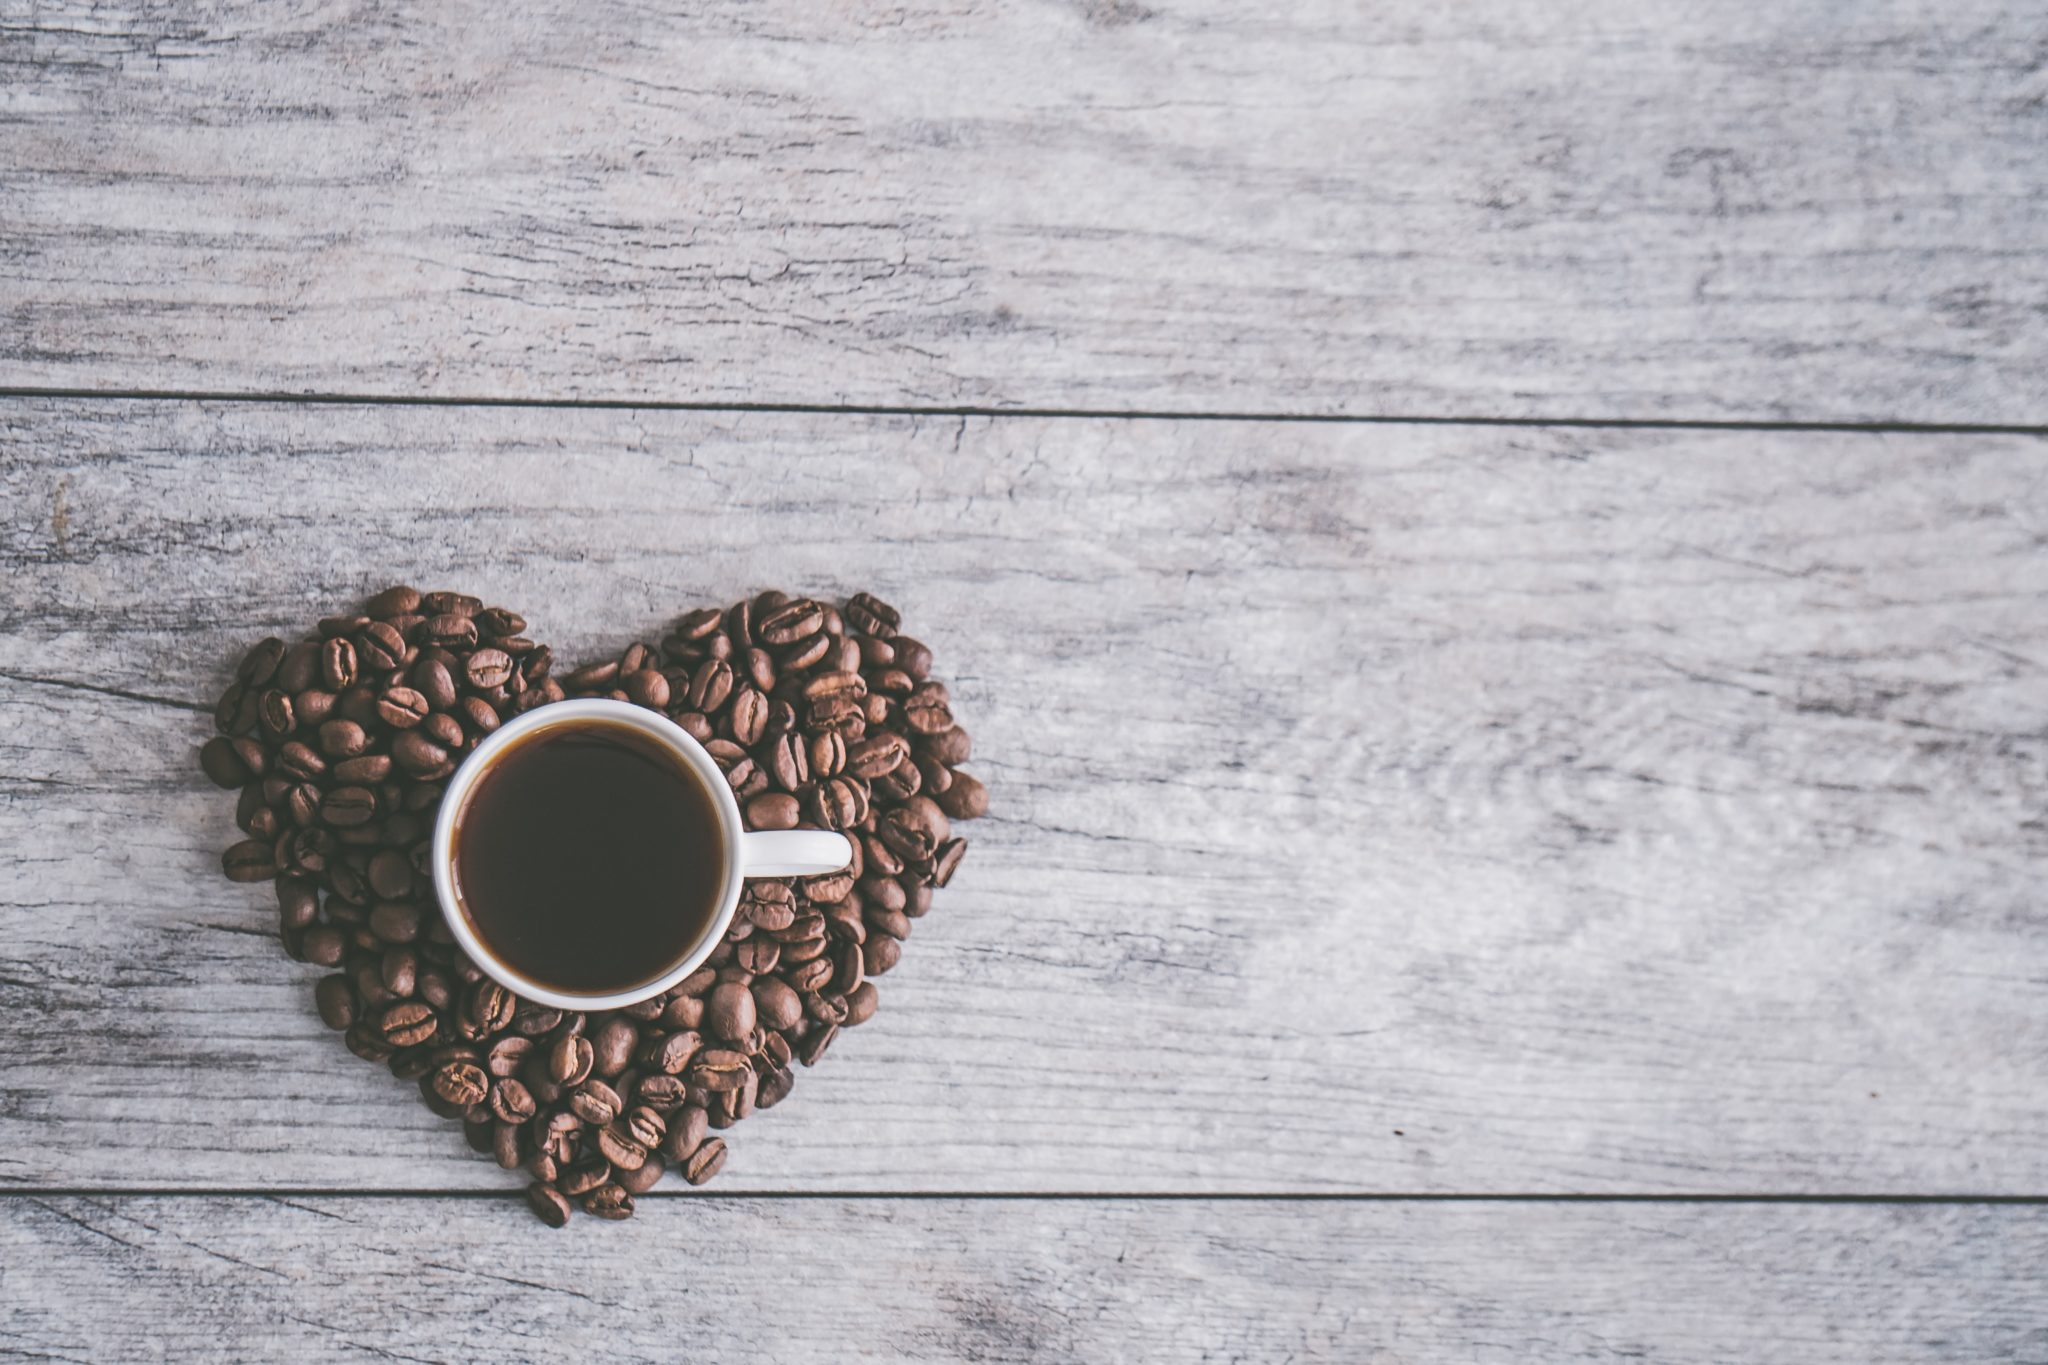 birds eye view of coffee beans in a heart shape with a mug of coffee in the centre against a wooden background